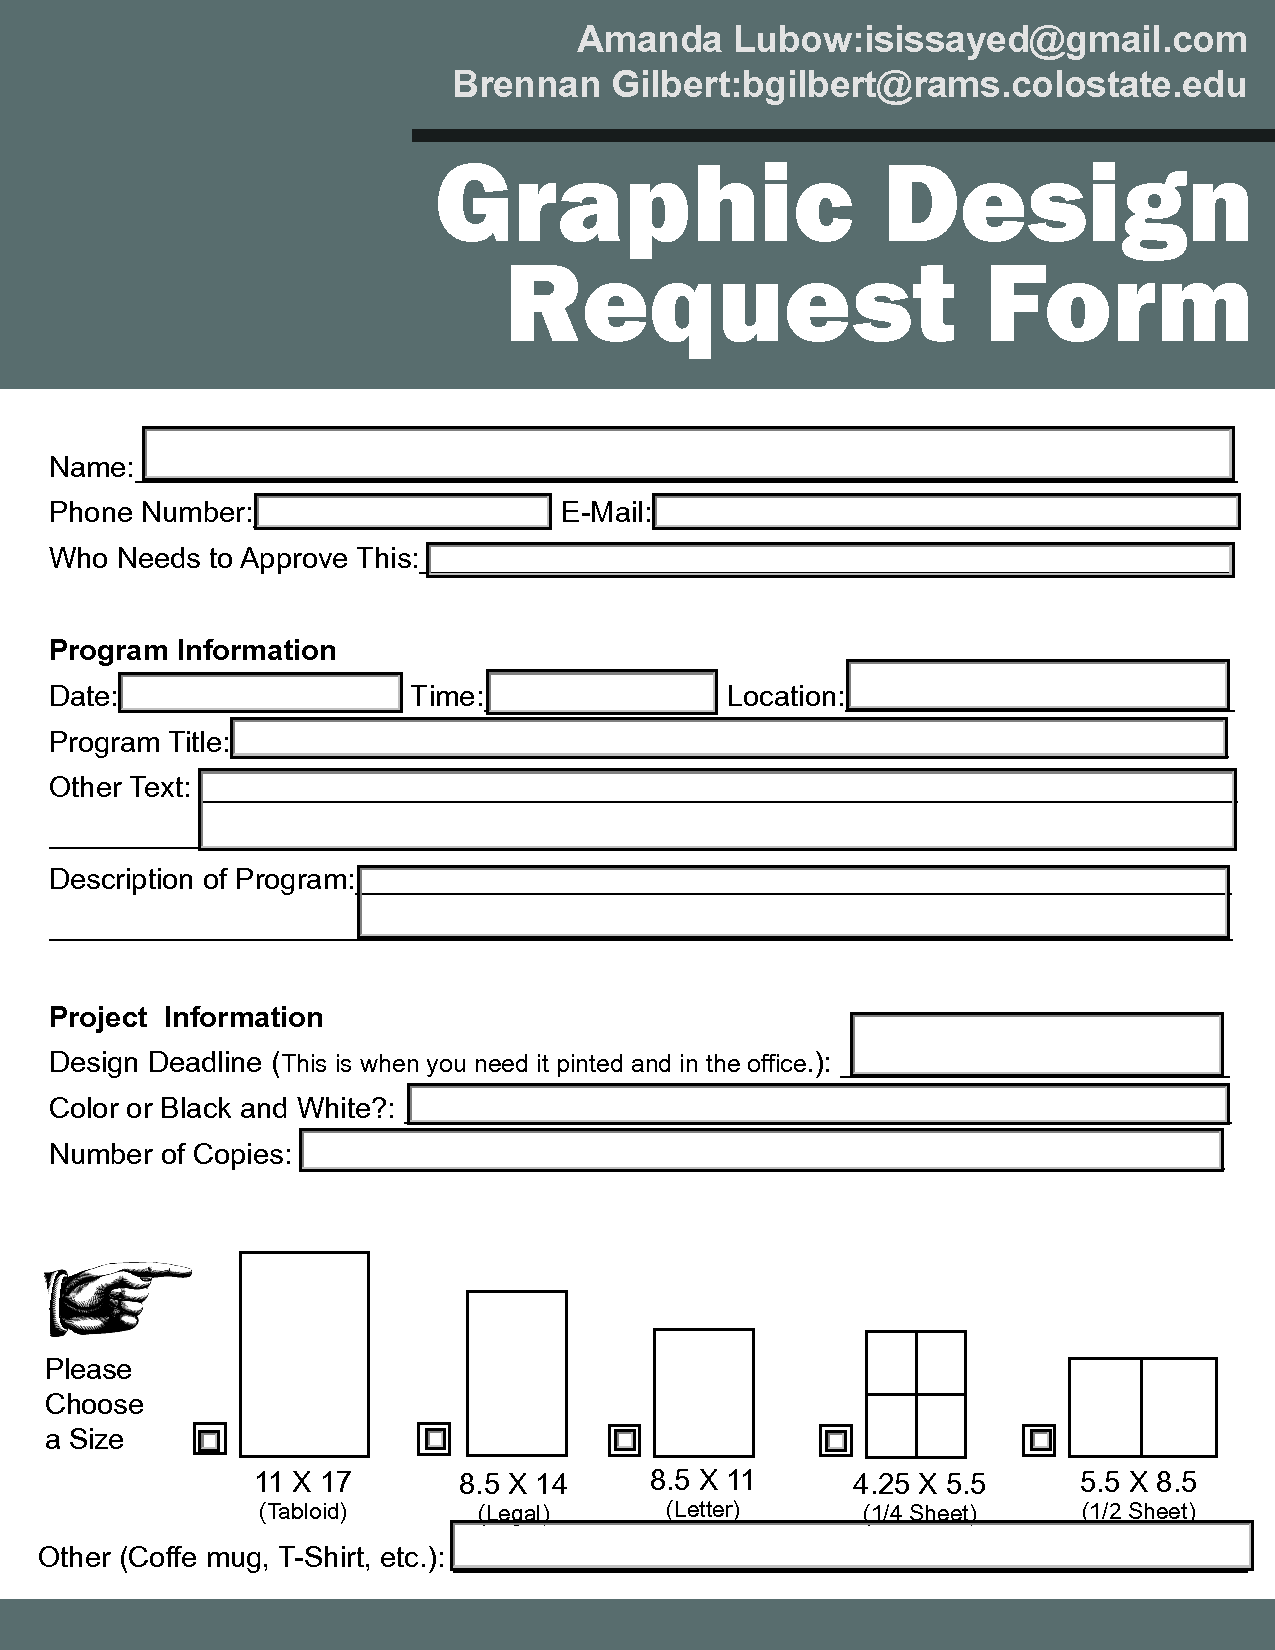 Graphic Design Request Form Template  Design Briefs